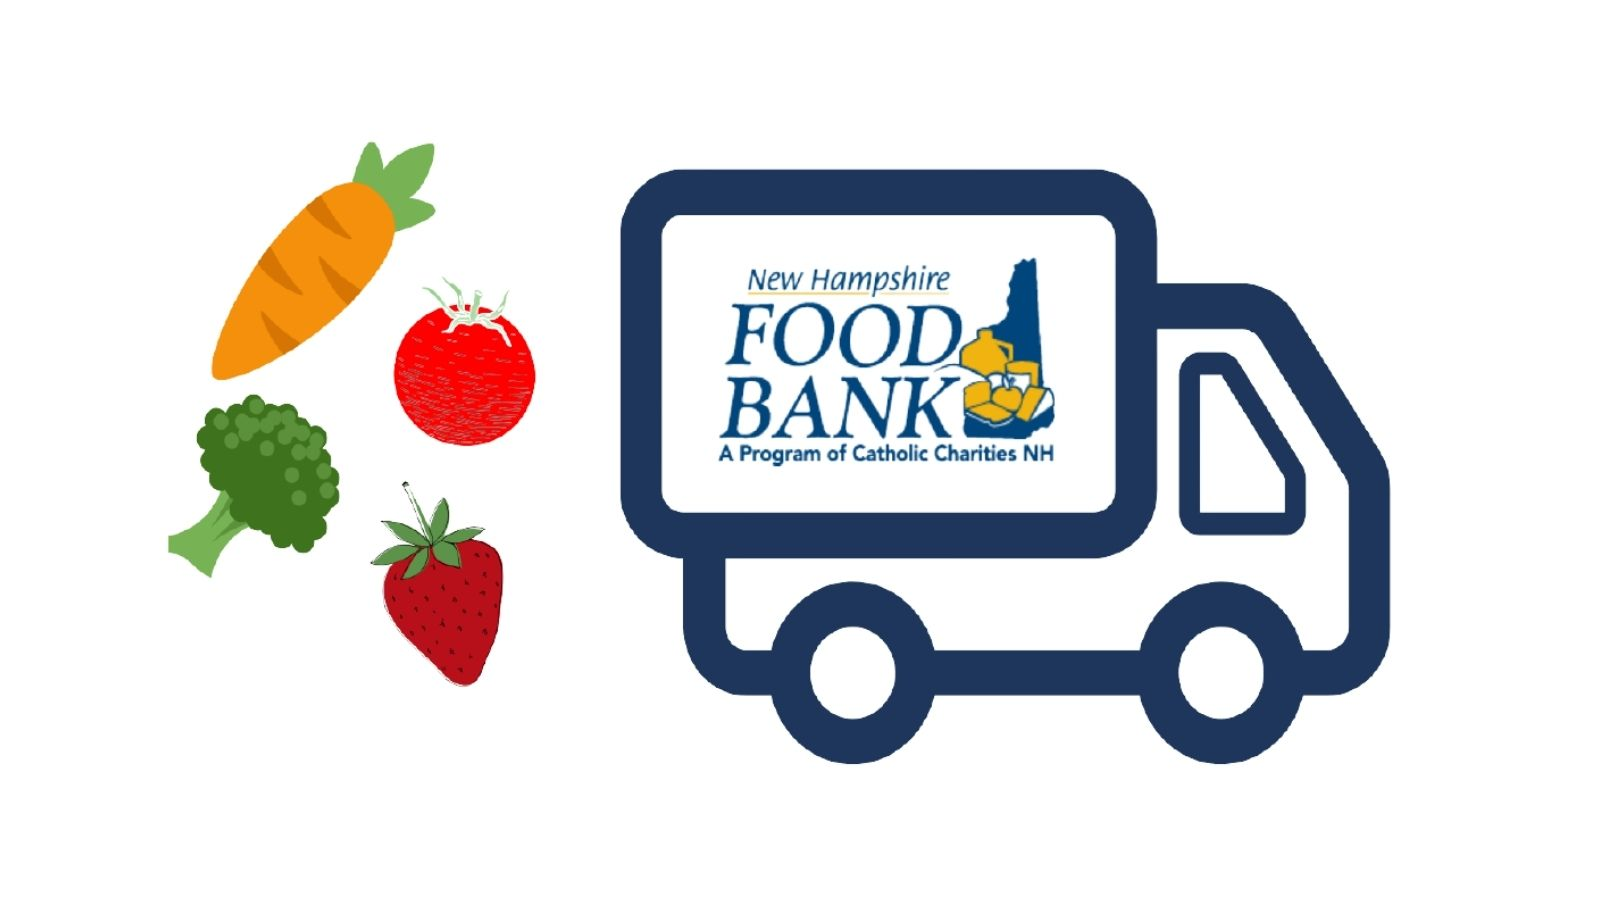 NH Food Bank Truck Mobile Food Pantry Promo Opens in new window